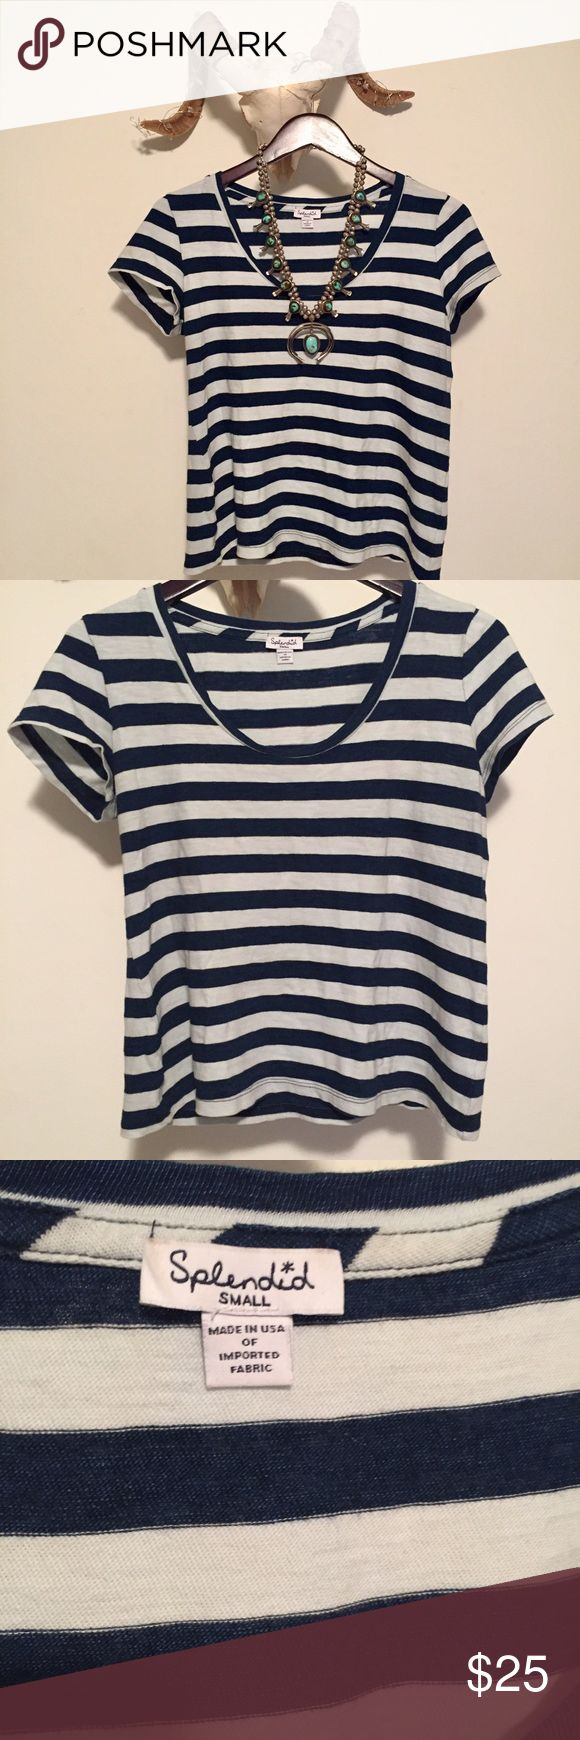 Striped Splendid Tee The cutest little boxy tee by Splendid. Features a wide scoop neck and nautical navy stripes. The perfect staple in any closet! Runs a bit oversized. 🚫modeling 🚫trades Splendid Tops Tees - Short Sleeve